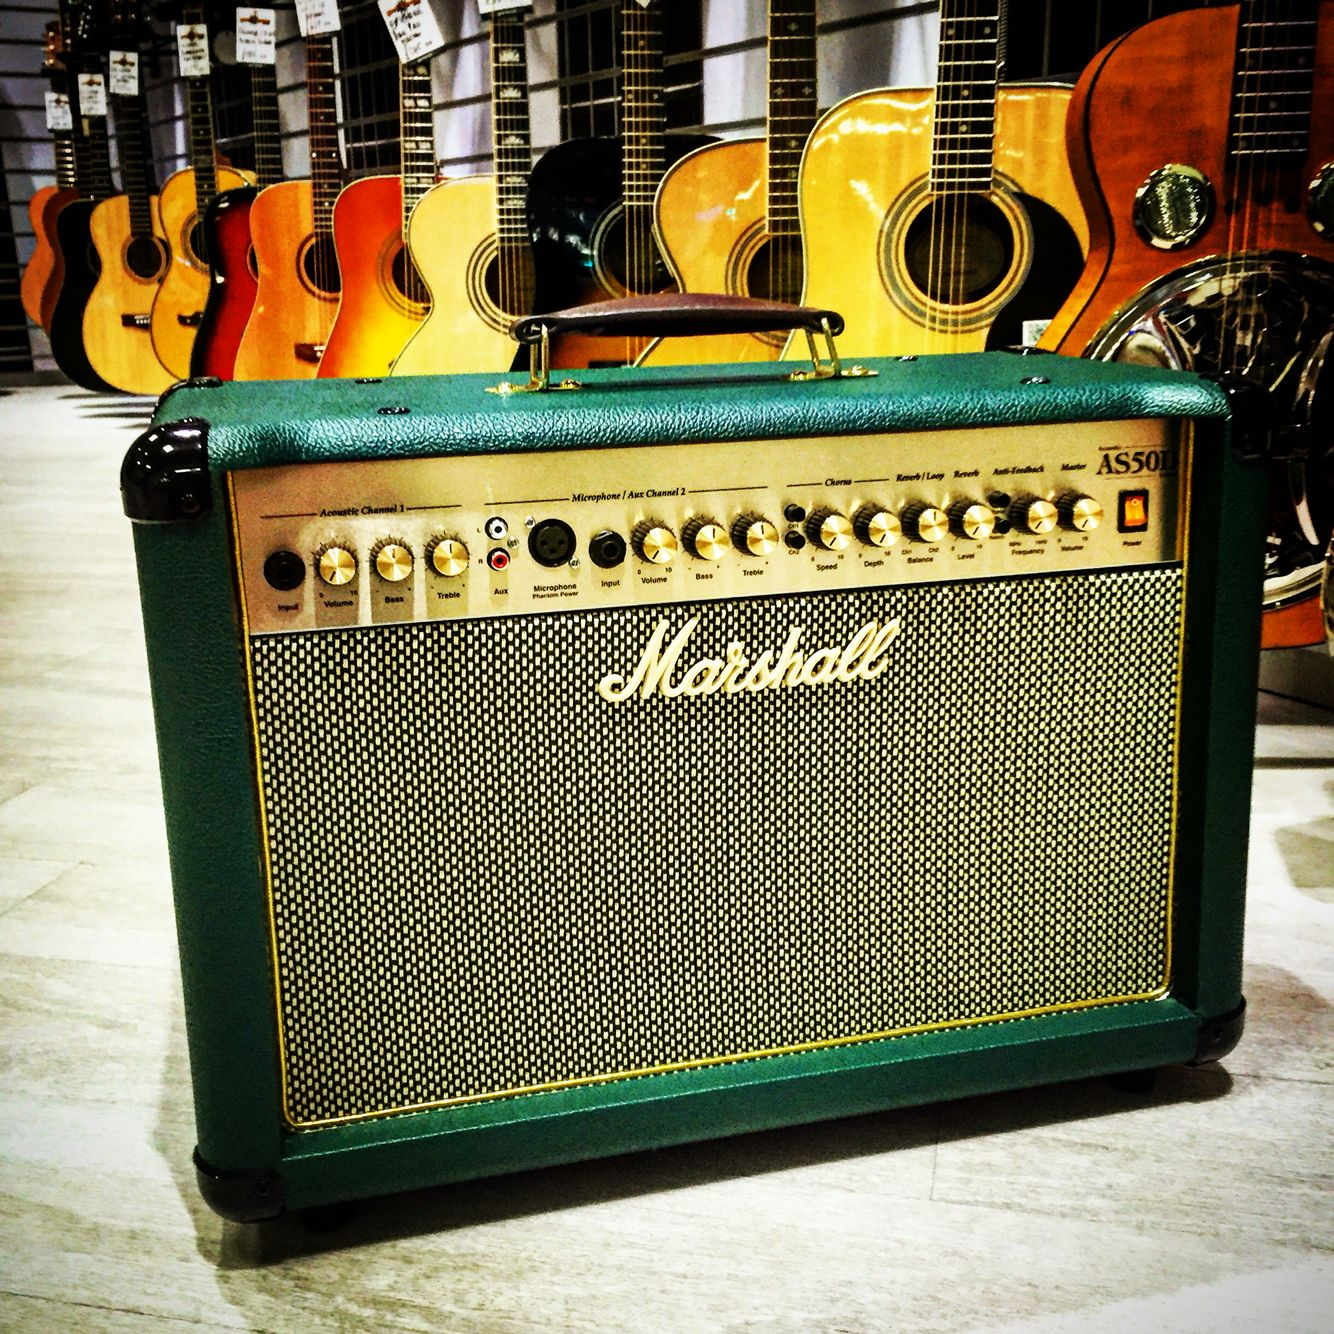 Limited Edition Marshall As50d Acoustic Guitar Amplifier In Racing Green